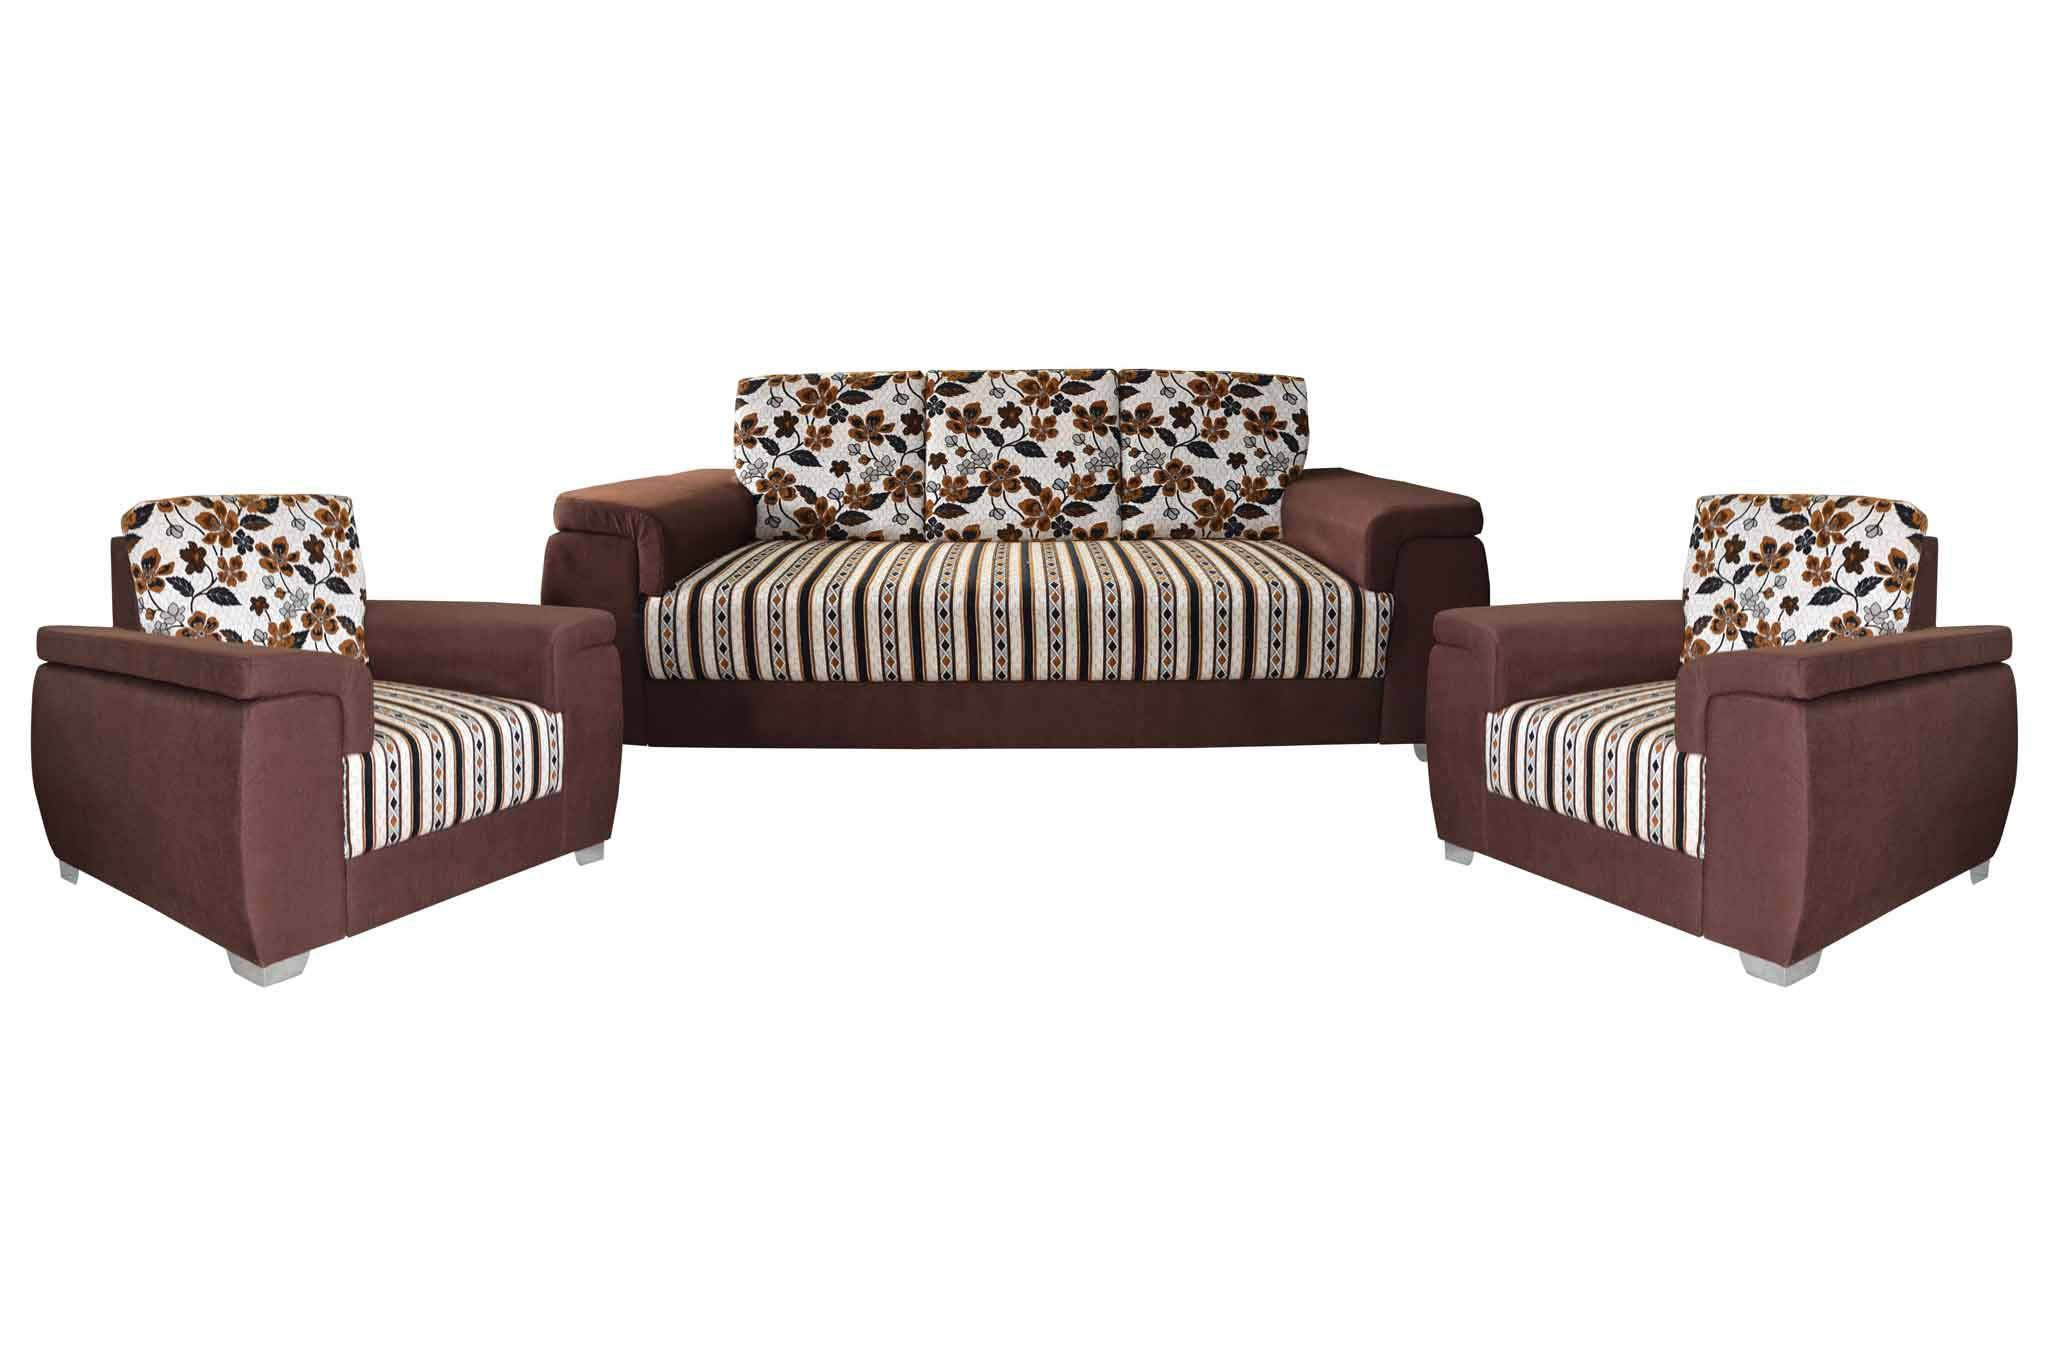 Astounding Mayro Fabric 3 1 1 Sofa Set Brown Gmtry Best Dining Table And Chair Ideas Images Gmtryco